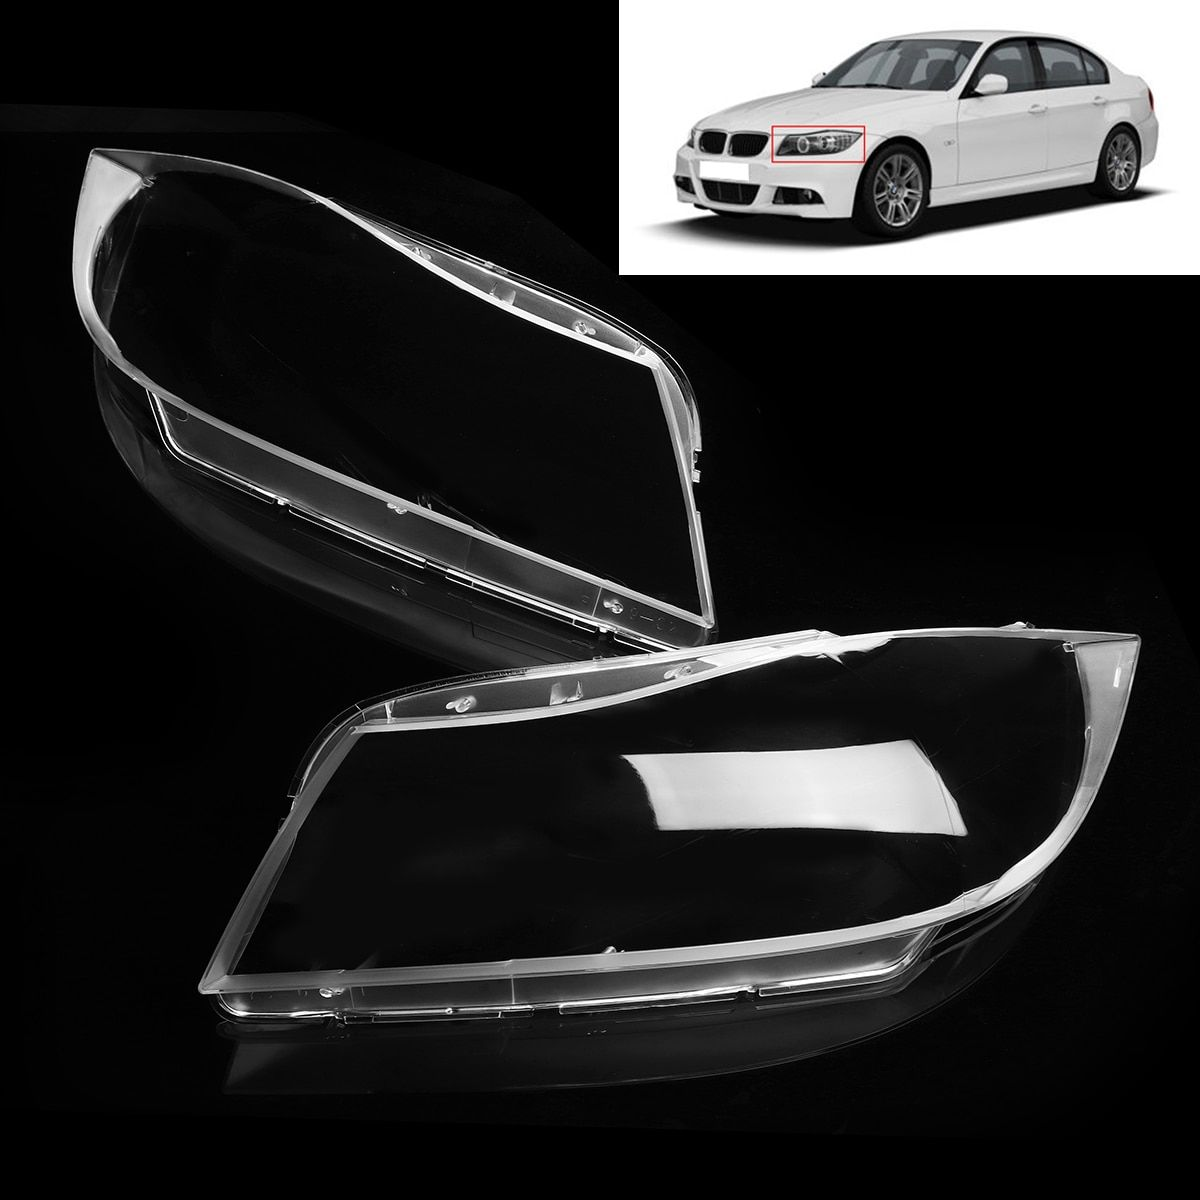 2Pcs Polycarbonate Headlamp Headlight Clear Lens Replacement Covers Case Shell Only XENON for BMW 3 E90 Sedan / E91 Touring